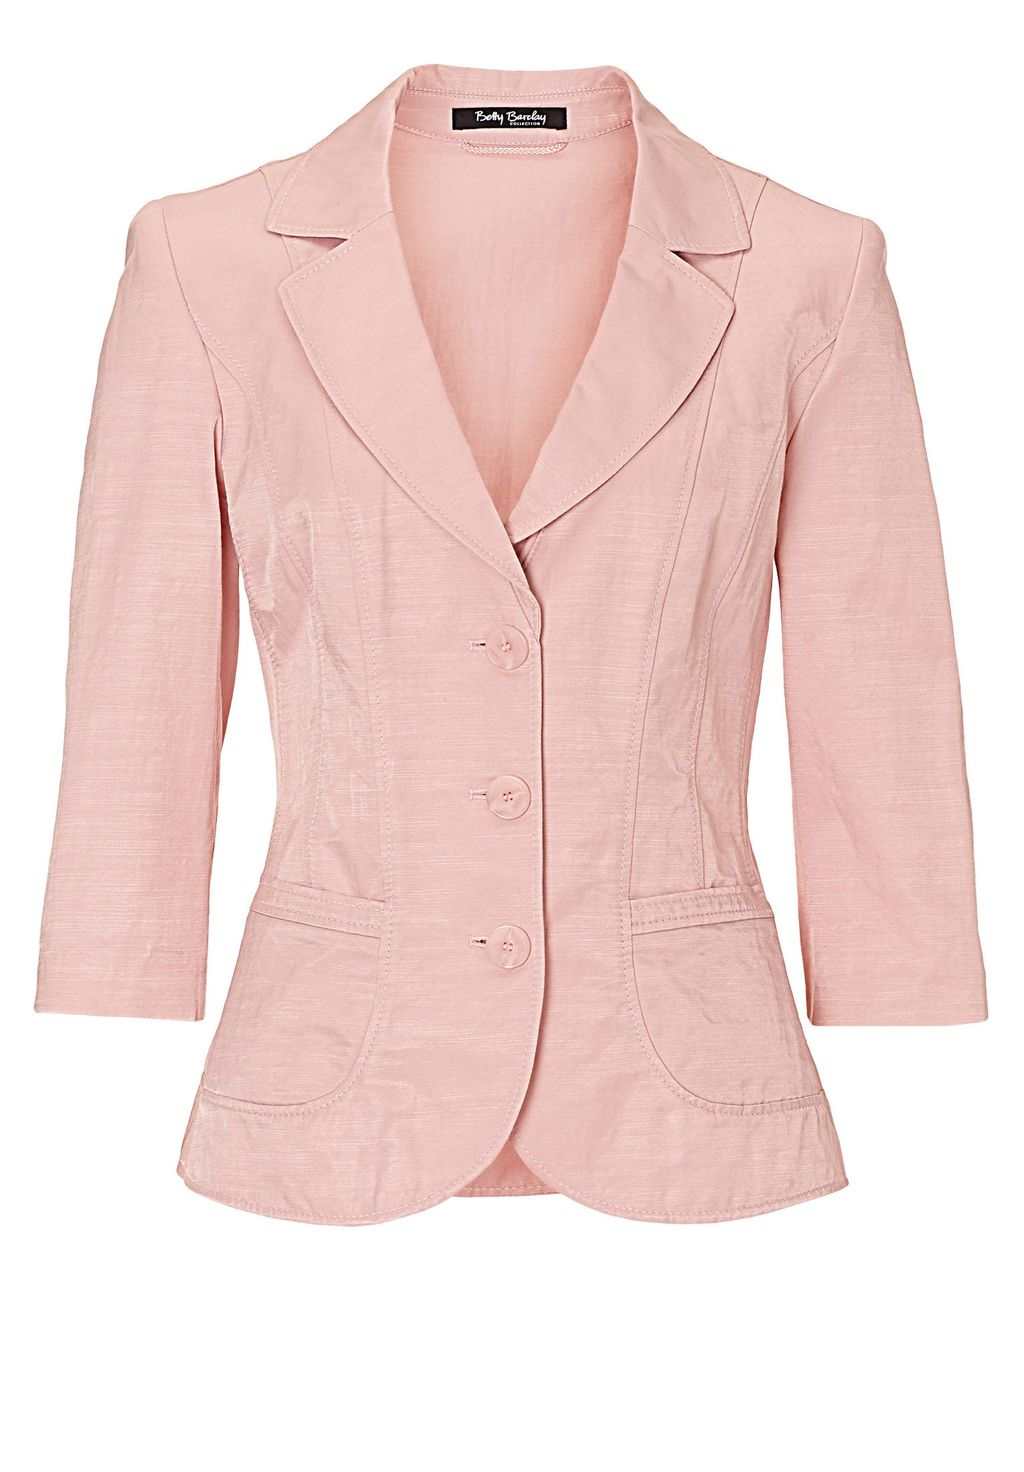 Three Button Blazer, Fuchsia - pattern: plain; style: single breasted blazer; collar: standard lapel/rever collar; predominant colour: blush; occasions: casual, creative work; length: standard; fit: tailored/fitted; fibres: linen - 100%; waist detail: fitted waist; sleeve length: 3/4 length; sleeve style: standard; texture group: linen; collar break: medium; pattern type: fabric; season: s/s 2016; wardrobe: basic